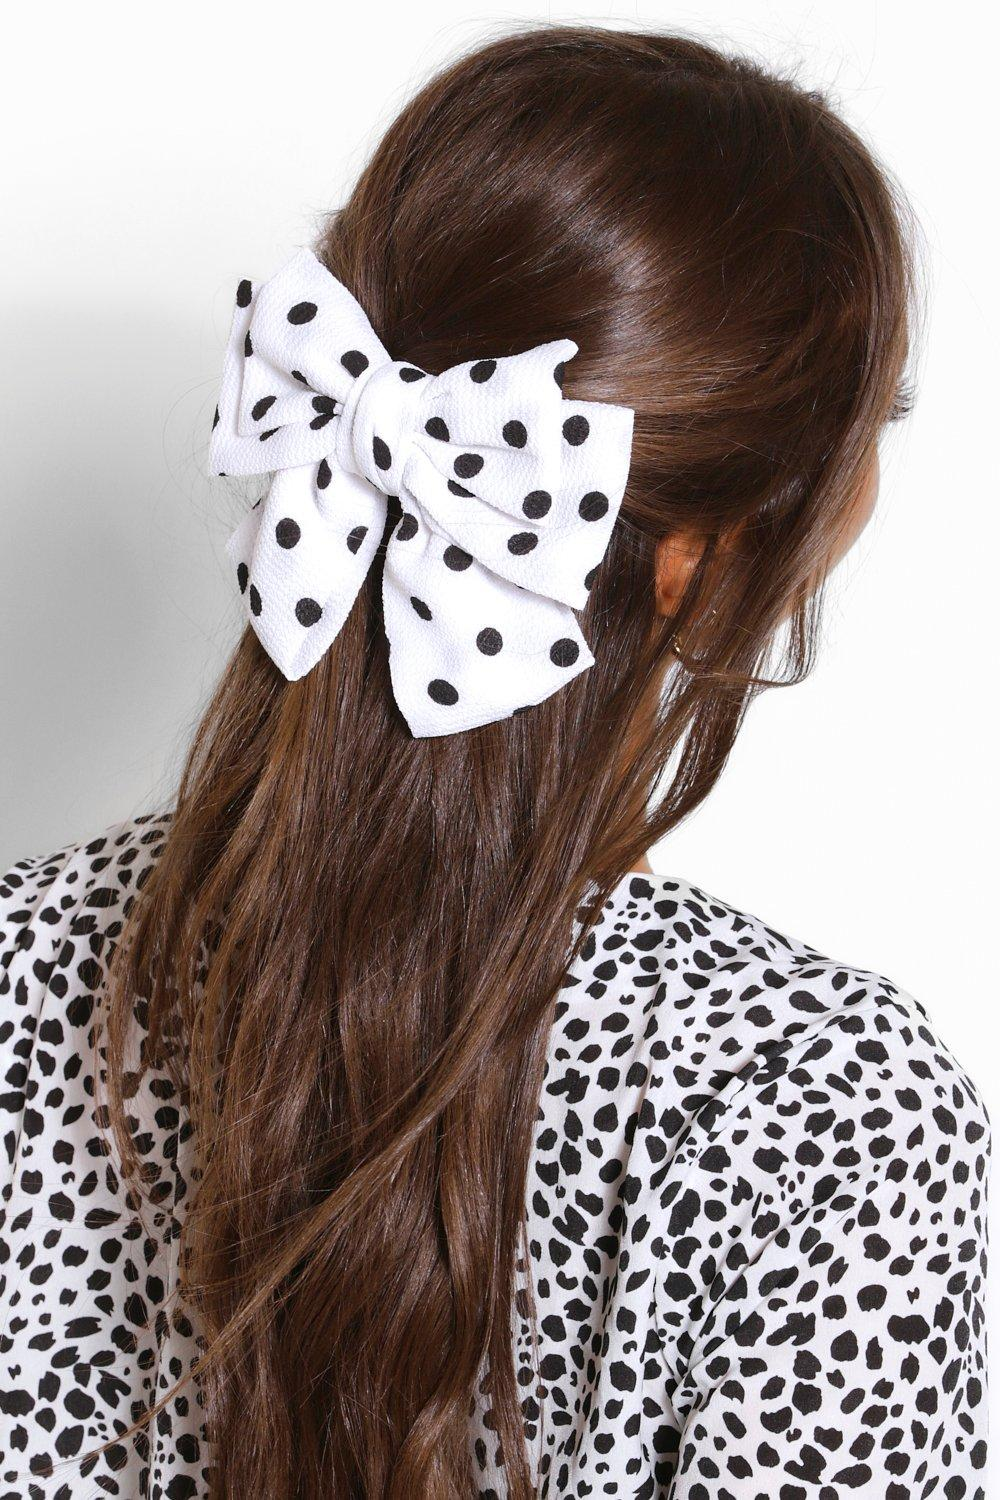 1950s Accessories | 50s Scarf, Belt, Parasol, Umbrella Womens Polka Dot Bow Hair Clip - White - One Size $4.80 AT vintagedancer.com